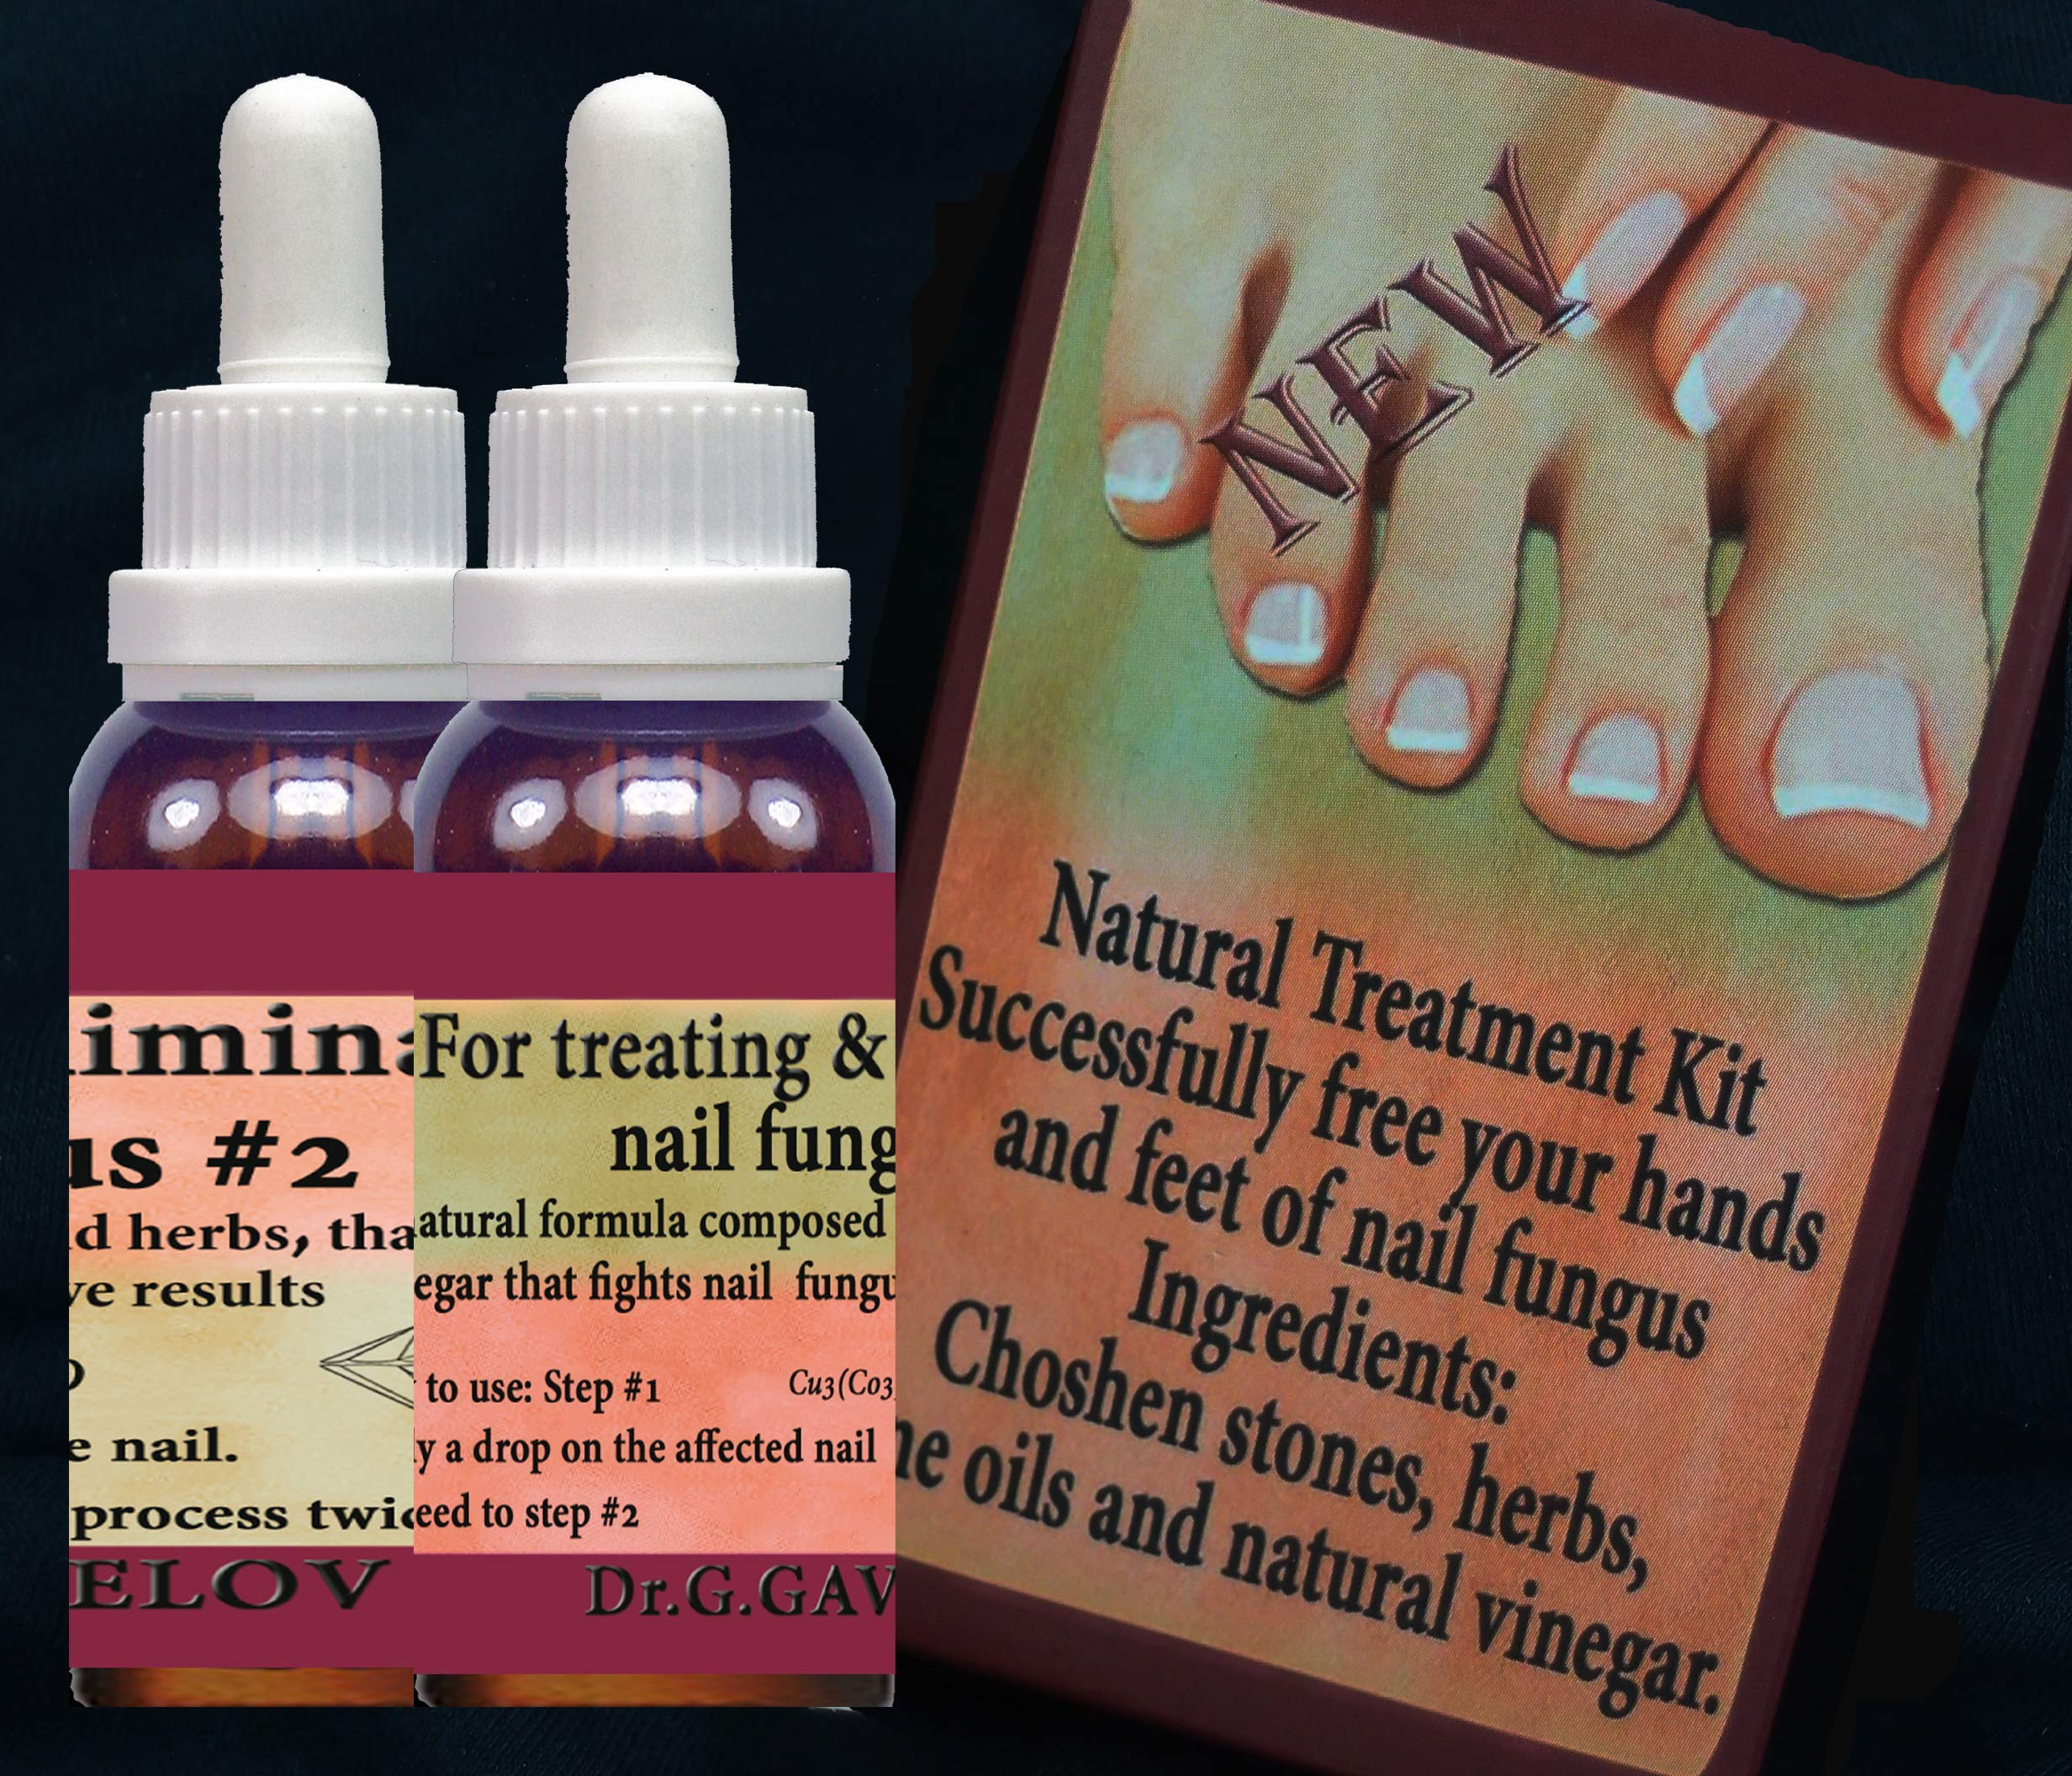 Excellent Anti Fungal Nail Treatment oils+ herbs + gem stones Natural Gifts